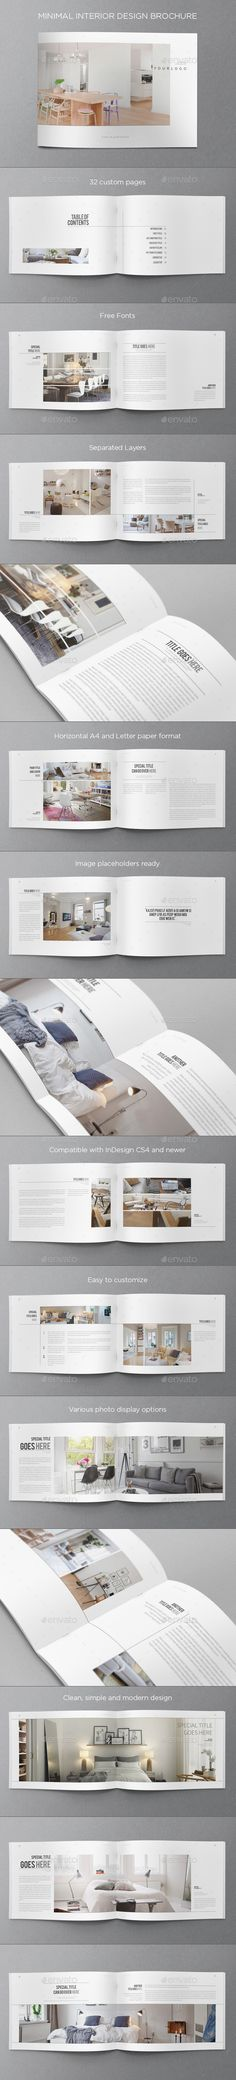 Minimal Interior Design Brochure. Download here: graphicriver.net/... #design #brochure